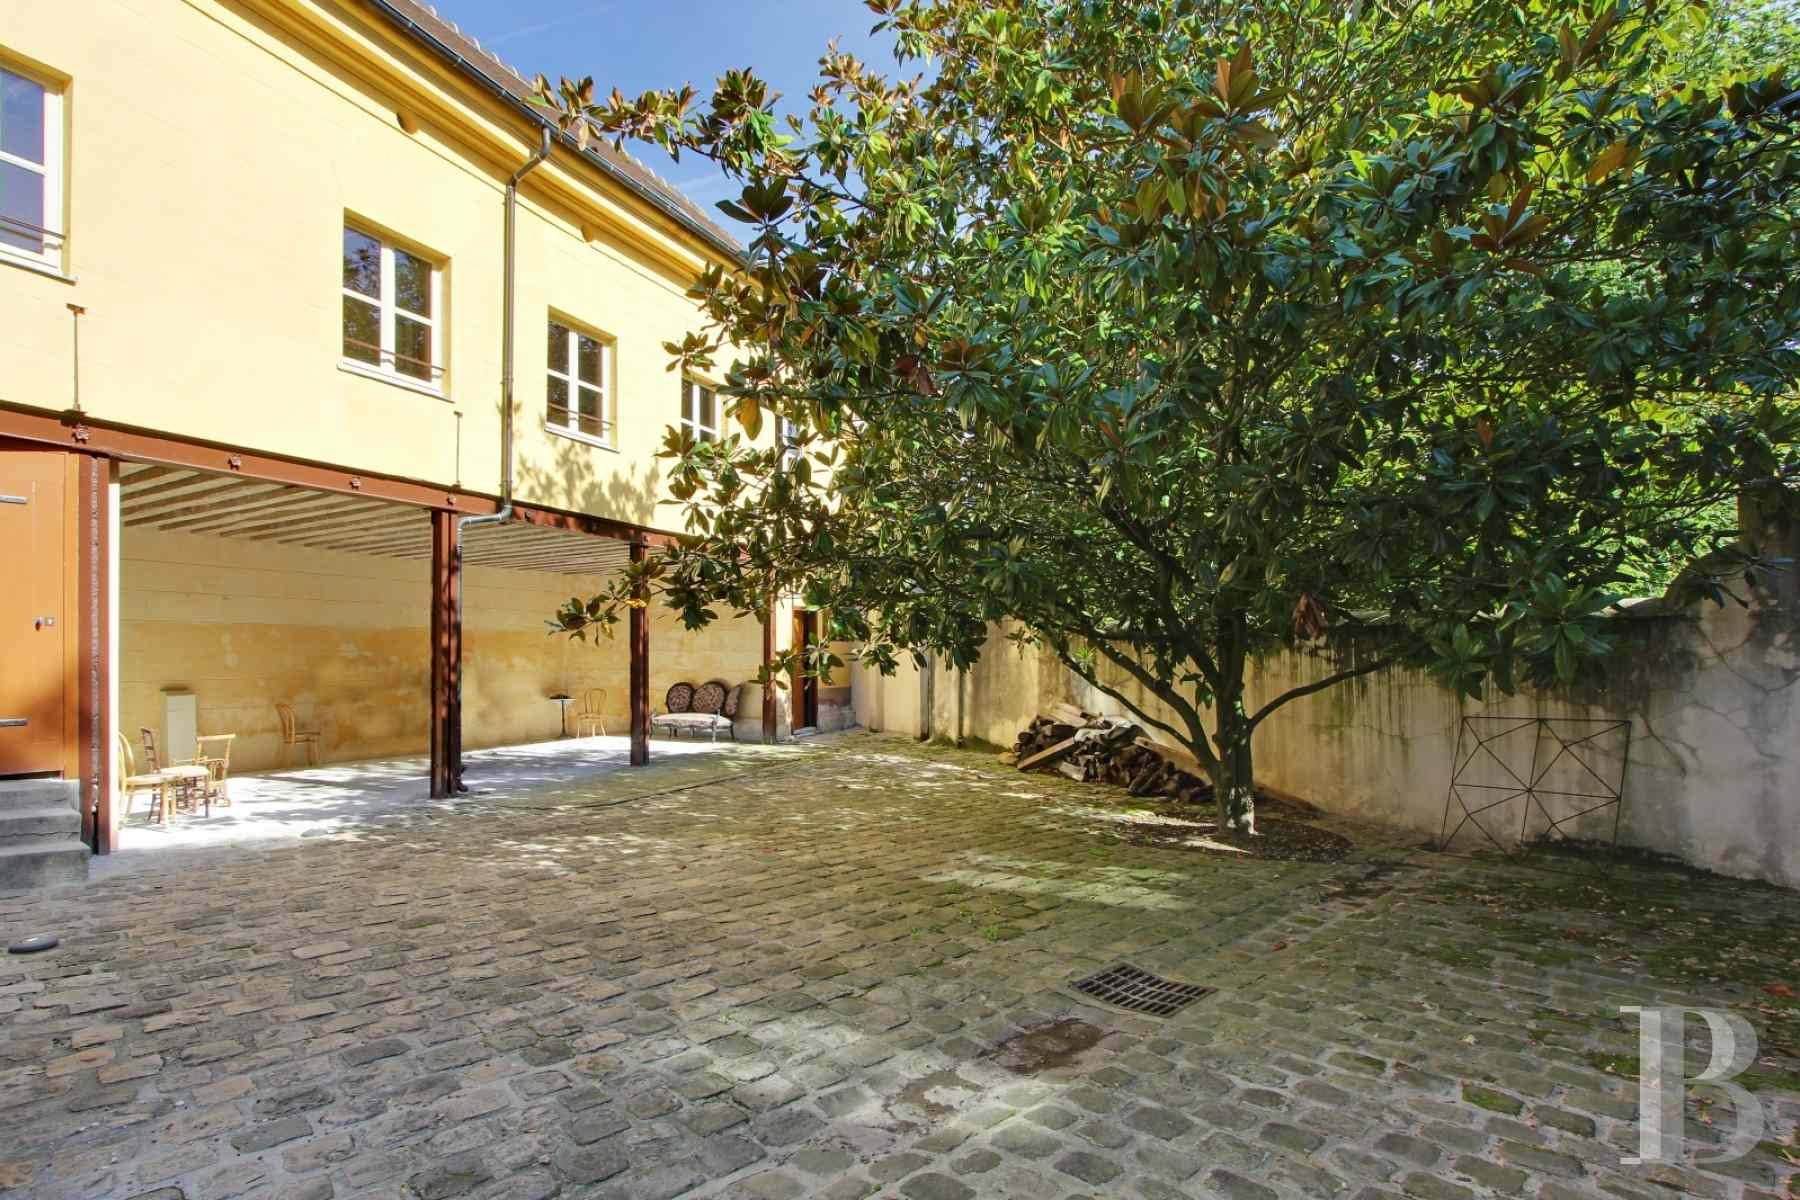 property for sale France paris antony property - 12 zoom